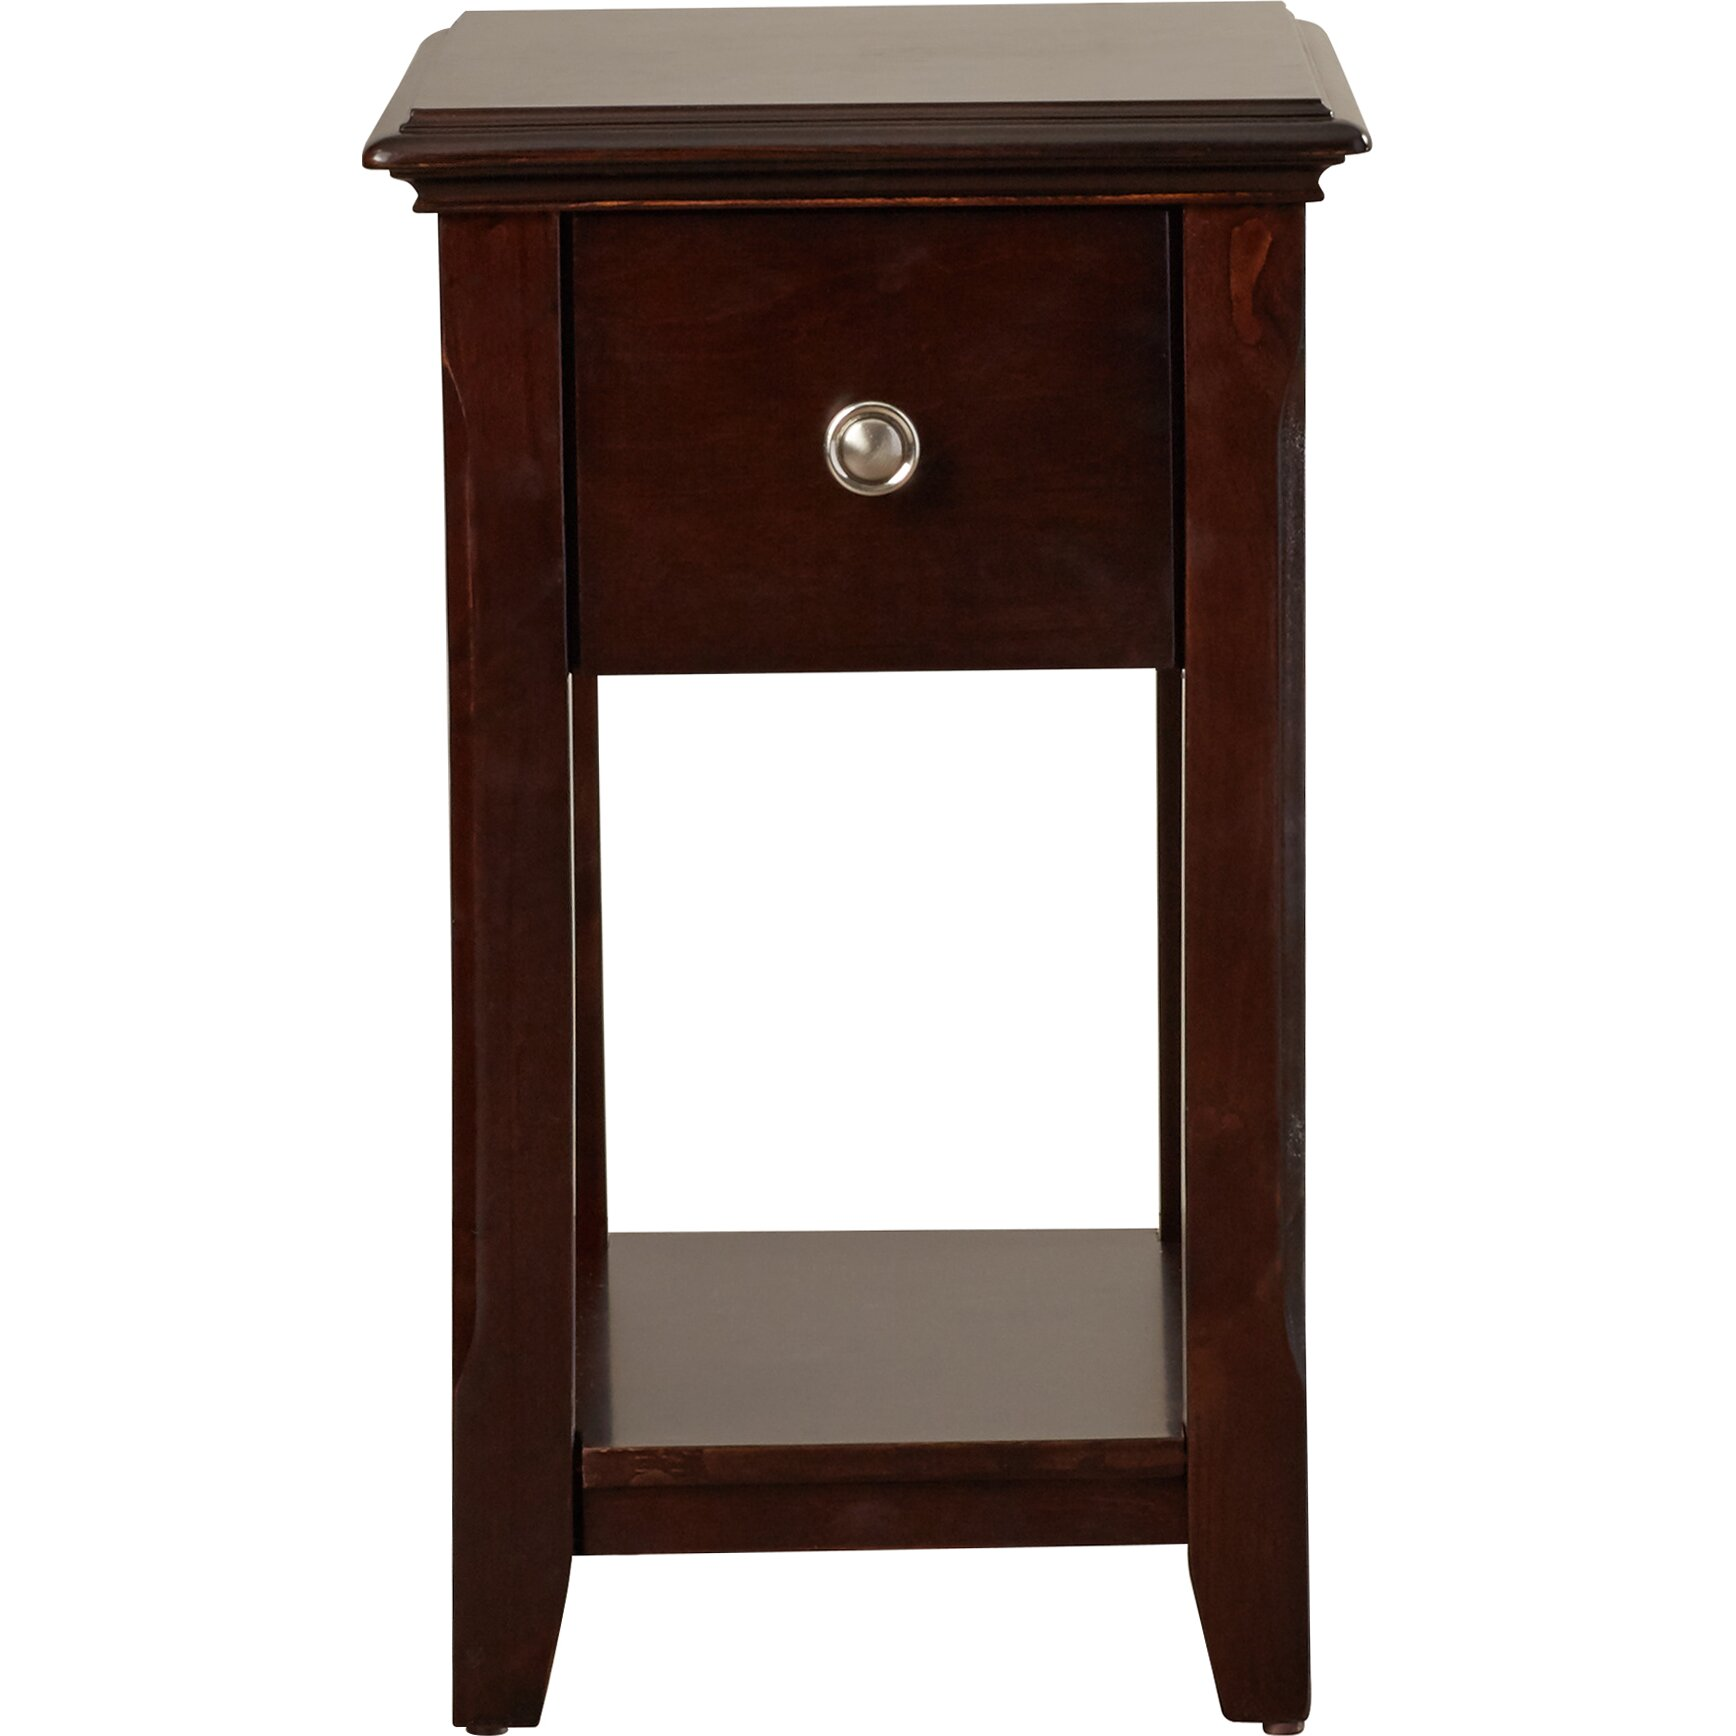 Charlton home bentonville end table reviews wayfair for End tables for sale near me